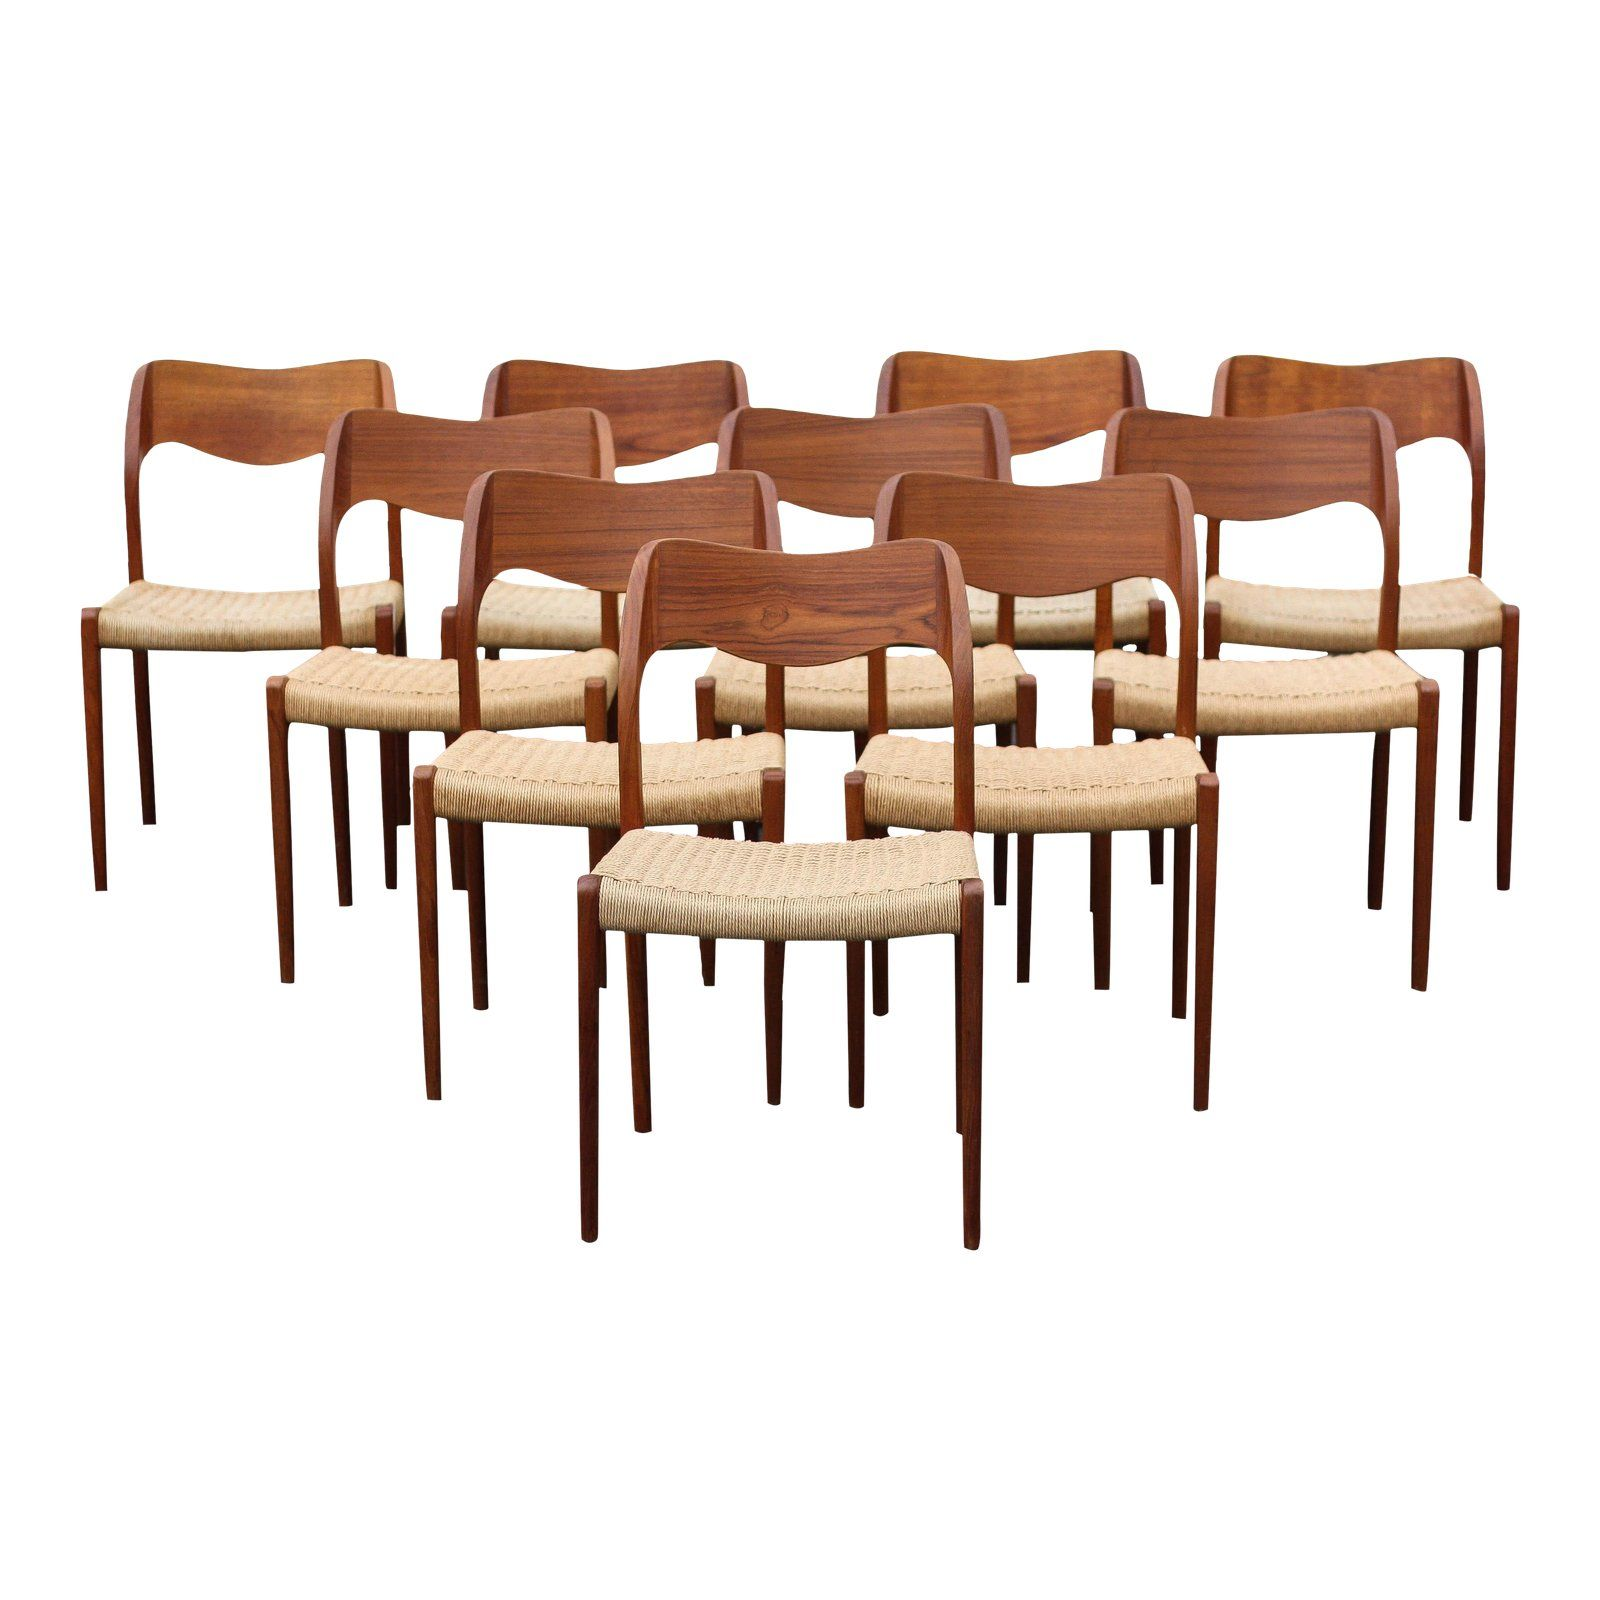 1960s Vintage Moller Model 71 Teak And Papercord Chairs Set Of 10 Chairish Dining Chairs Chair Dining Chairs For Sale